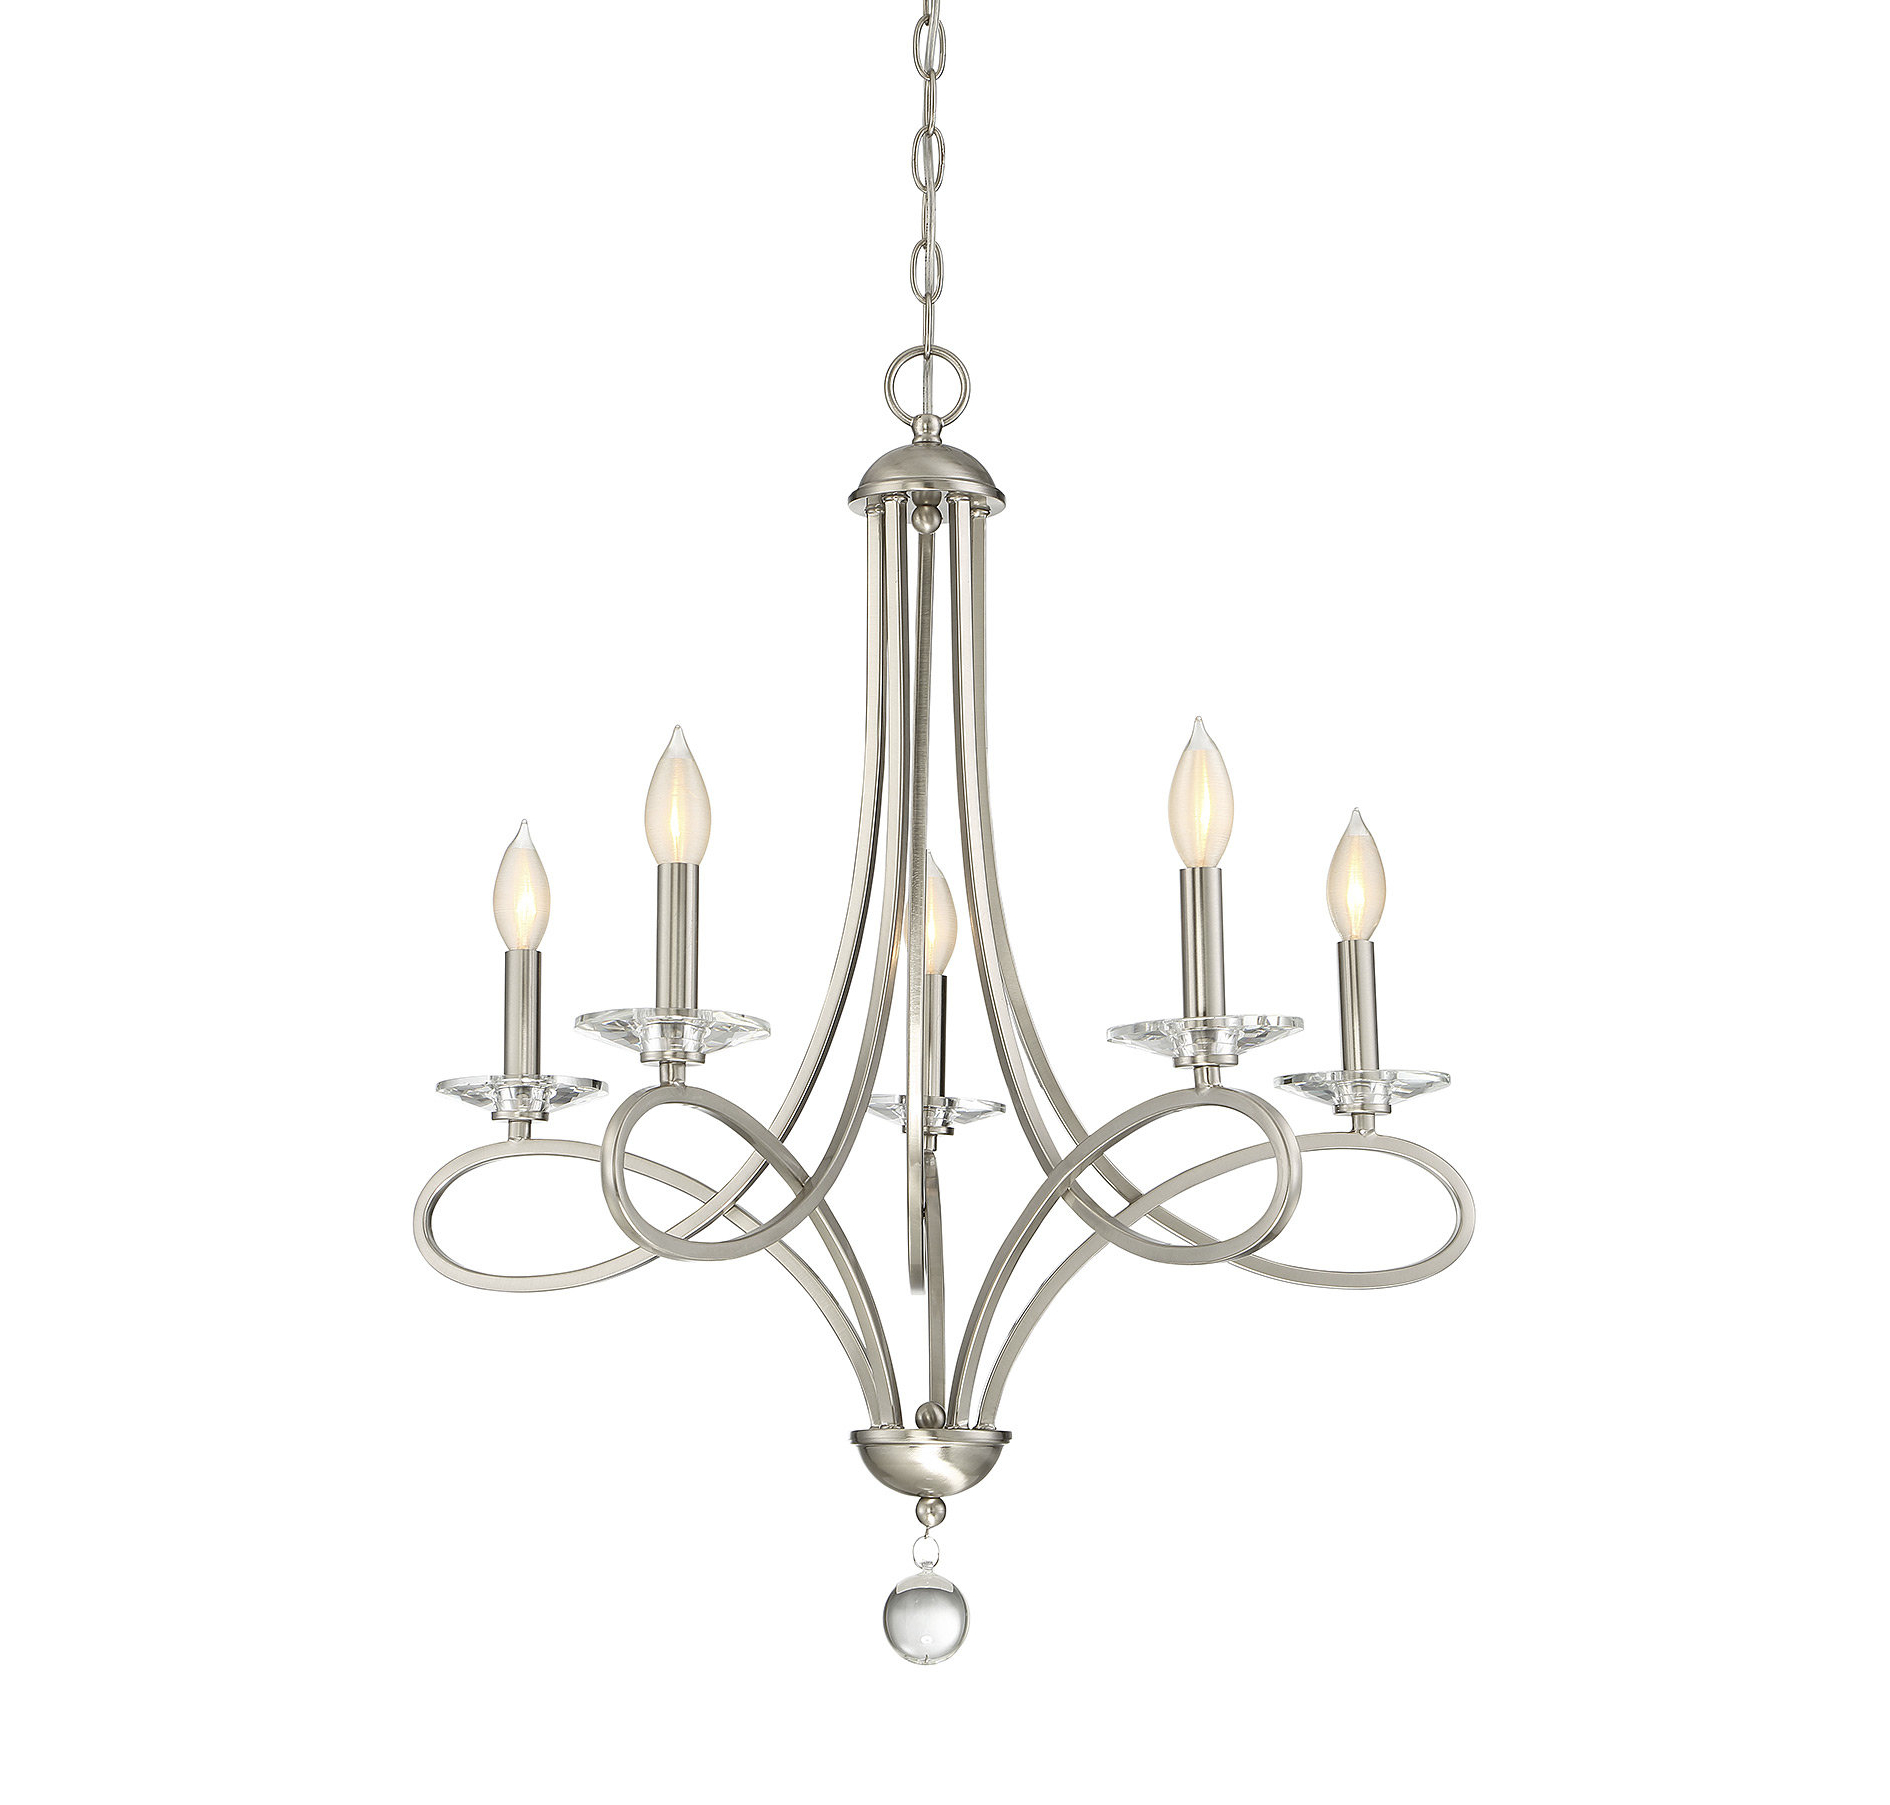 Willa Arlo Interiors Berger 5 Light Candle Style Chandelier Intended For Trendy Florentina 5 Light Candle Style Chandeliers (View 20 of 25)